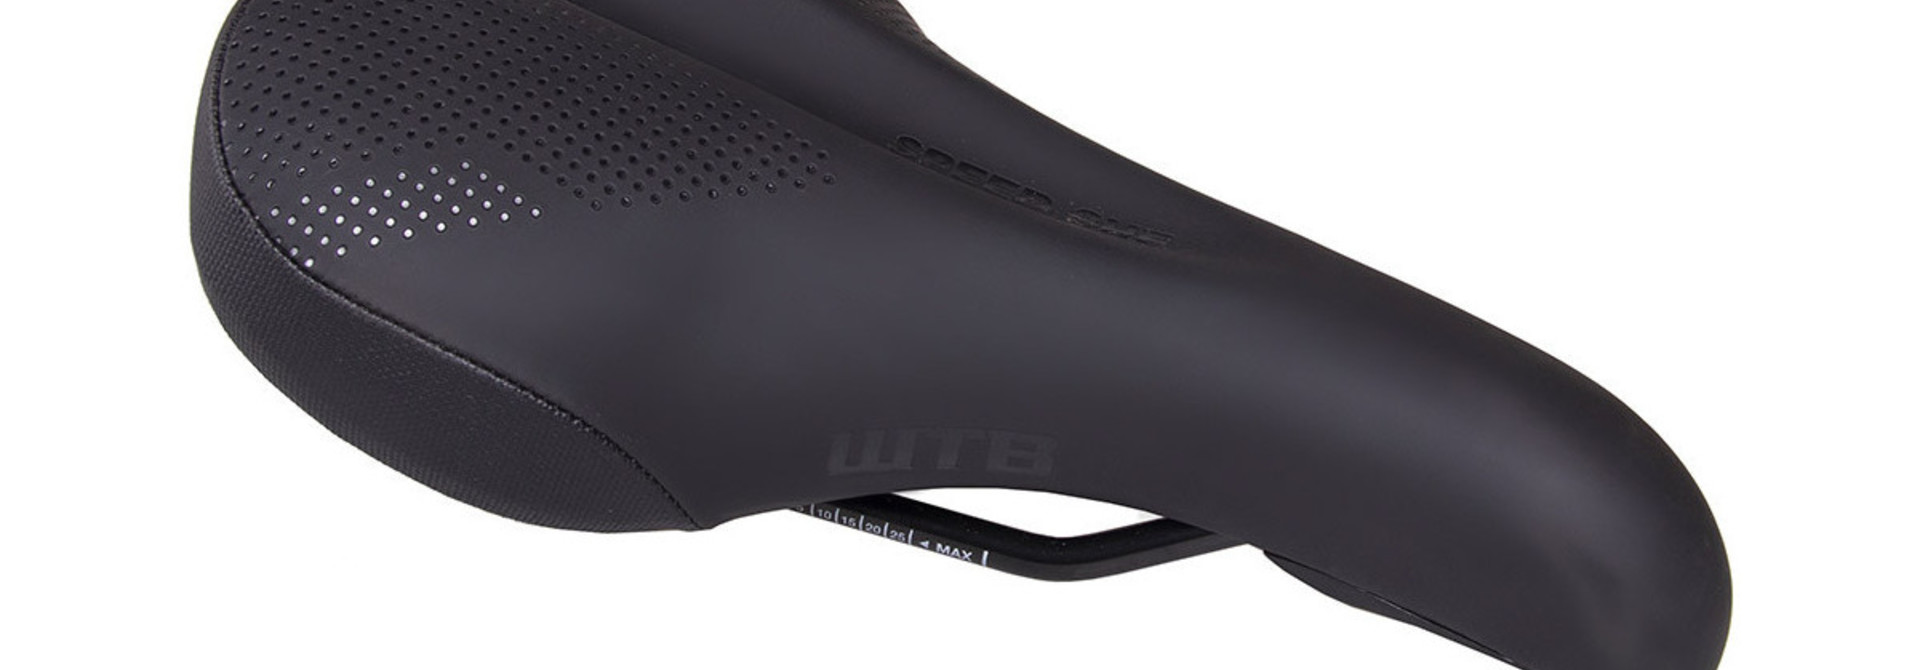 WTB SPEED SHE STEEL WIDE SADDLE